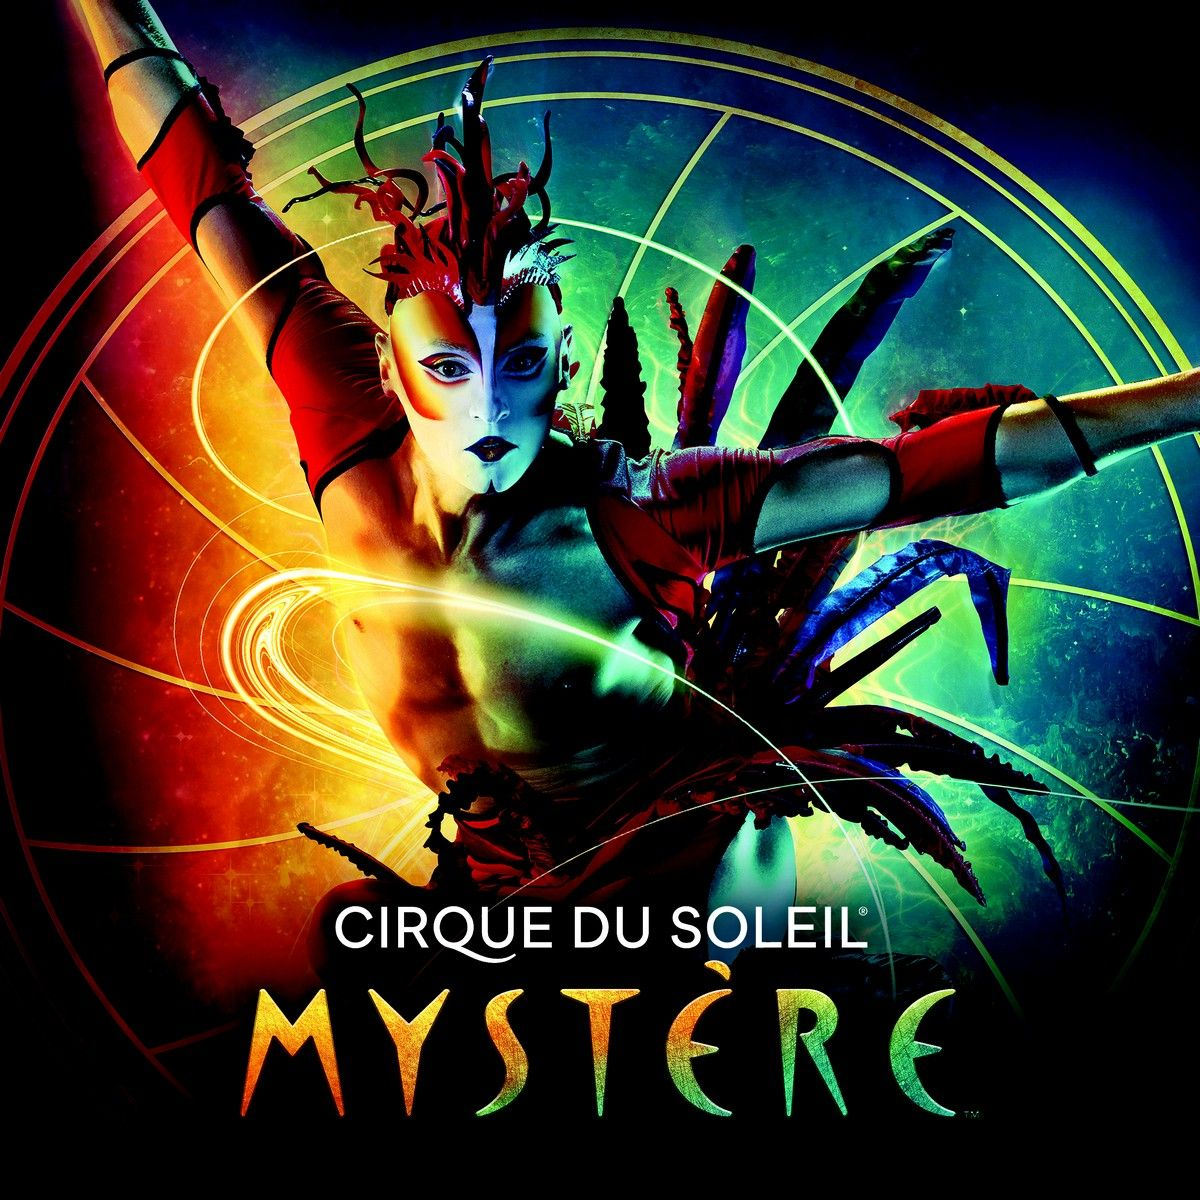 Jun 15,  · Tested: Tickets for Cirque du Soleil shows range from $59 to $ I checked availability for this Saturday night and found tickets to see